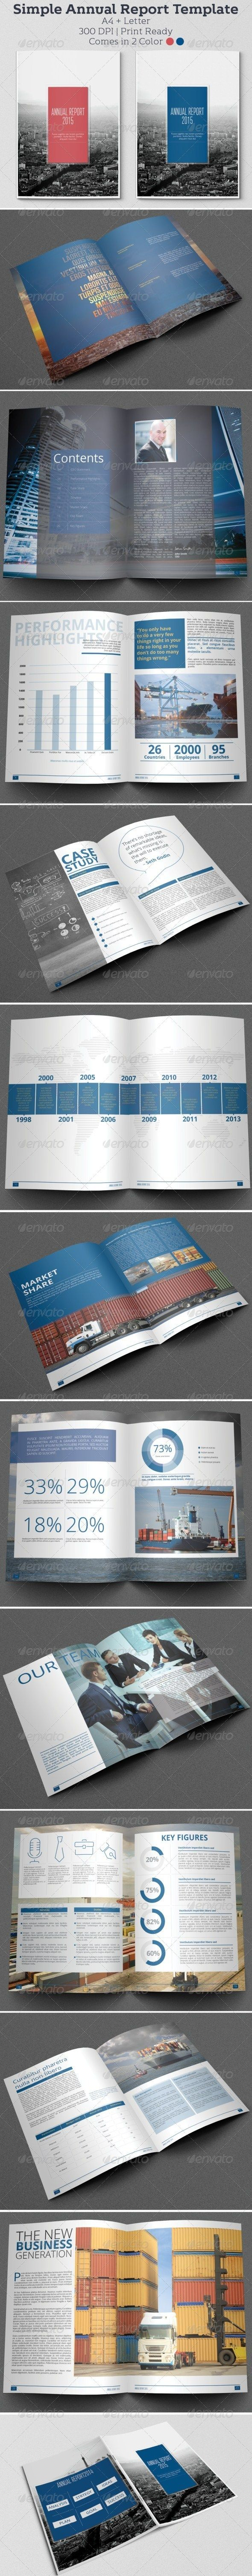 Simple Annual Report Template — InDesign INDD #swiss #simple ...